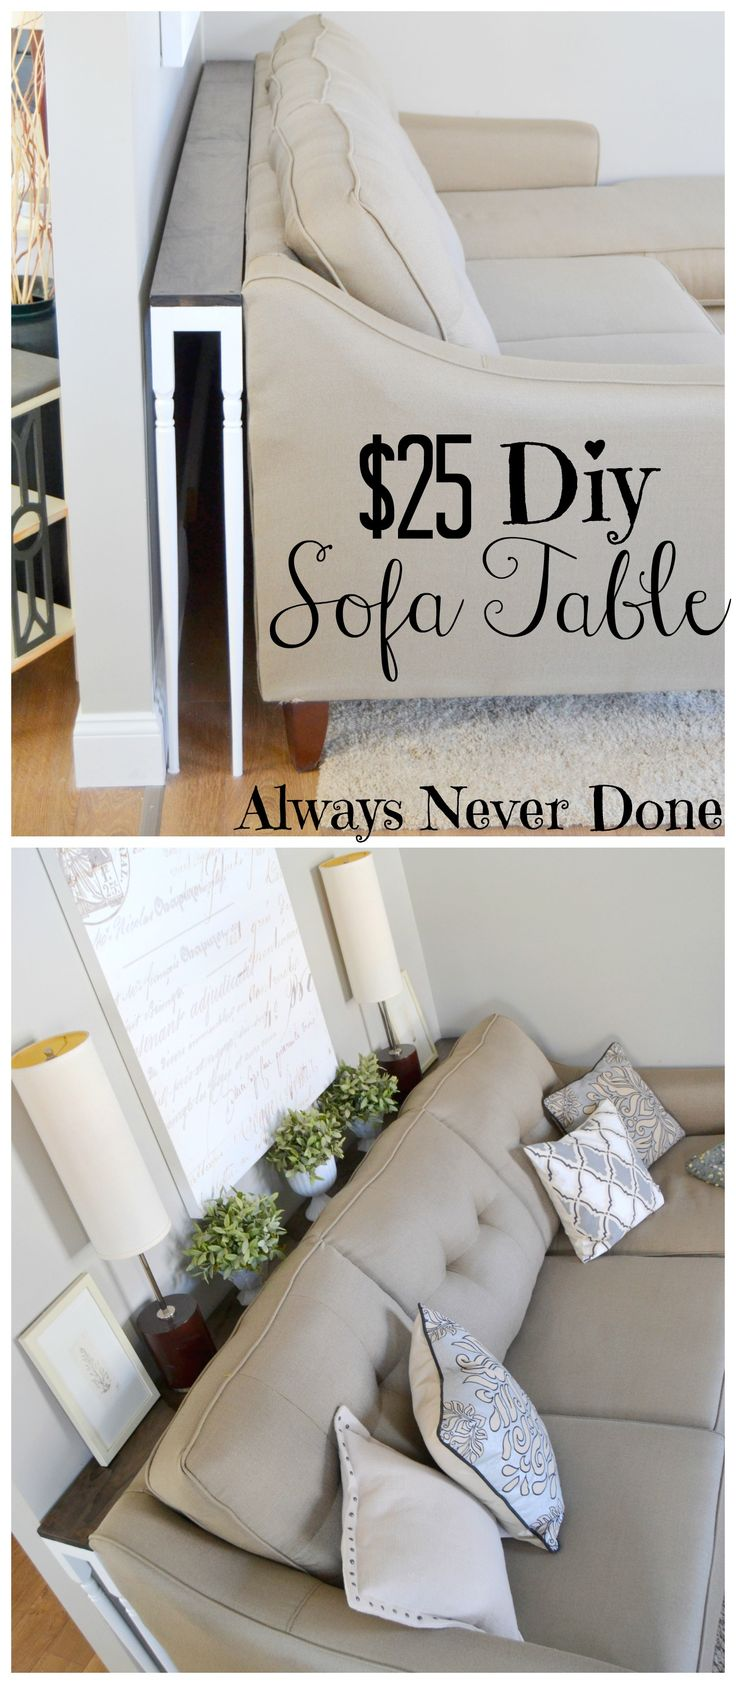 Diy sofa table for 25 using stair rails as legs i love this ides